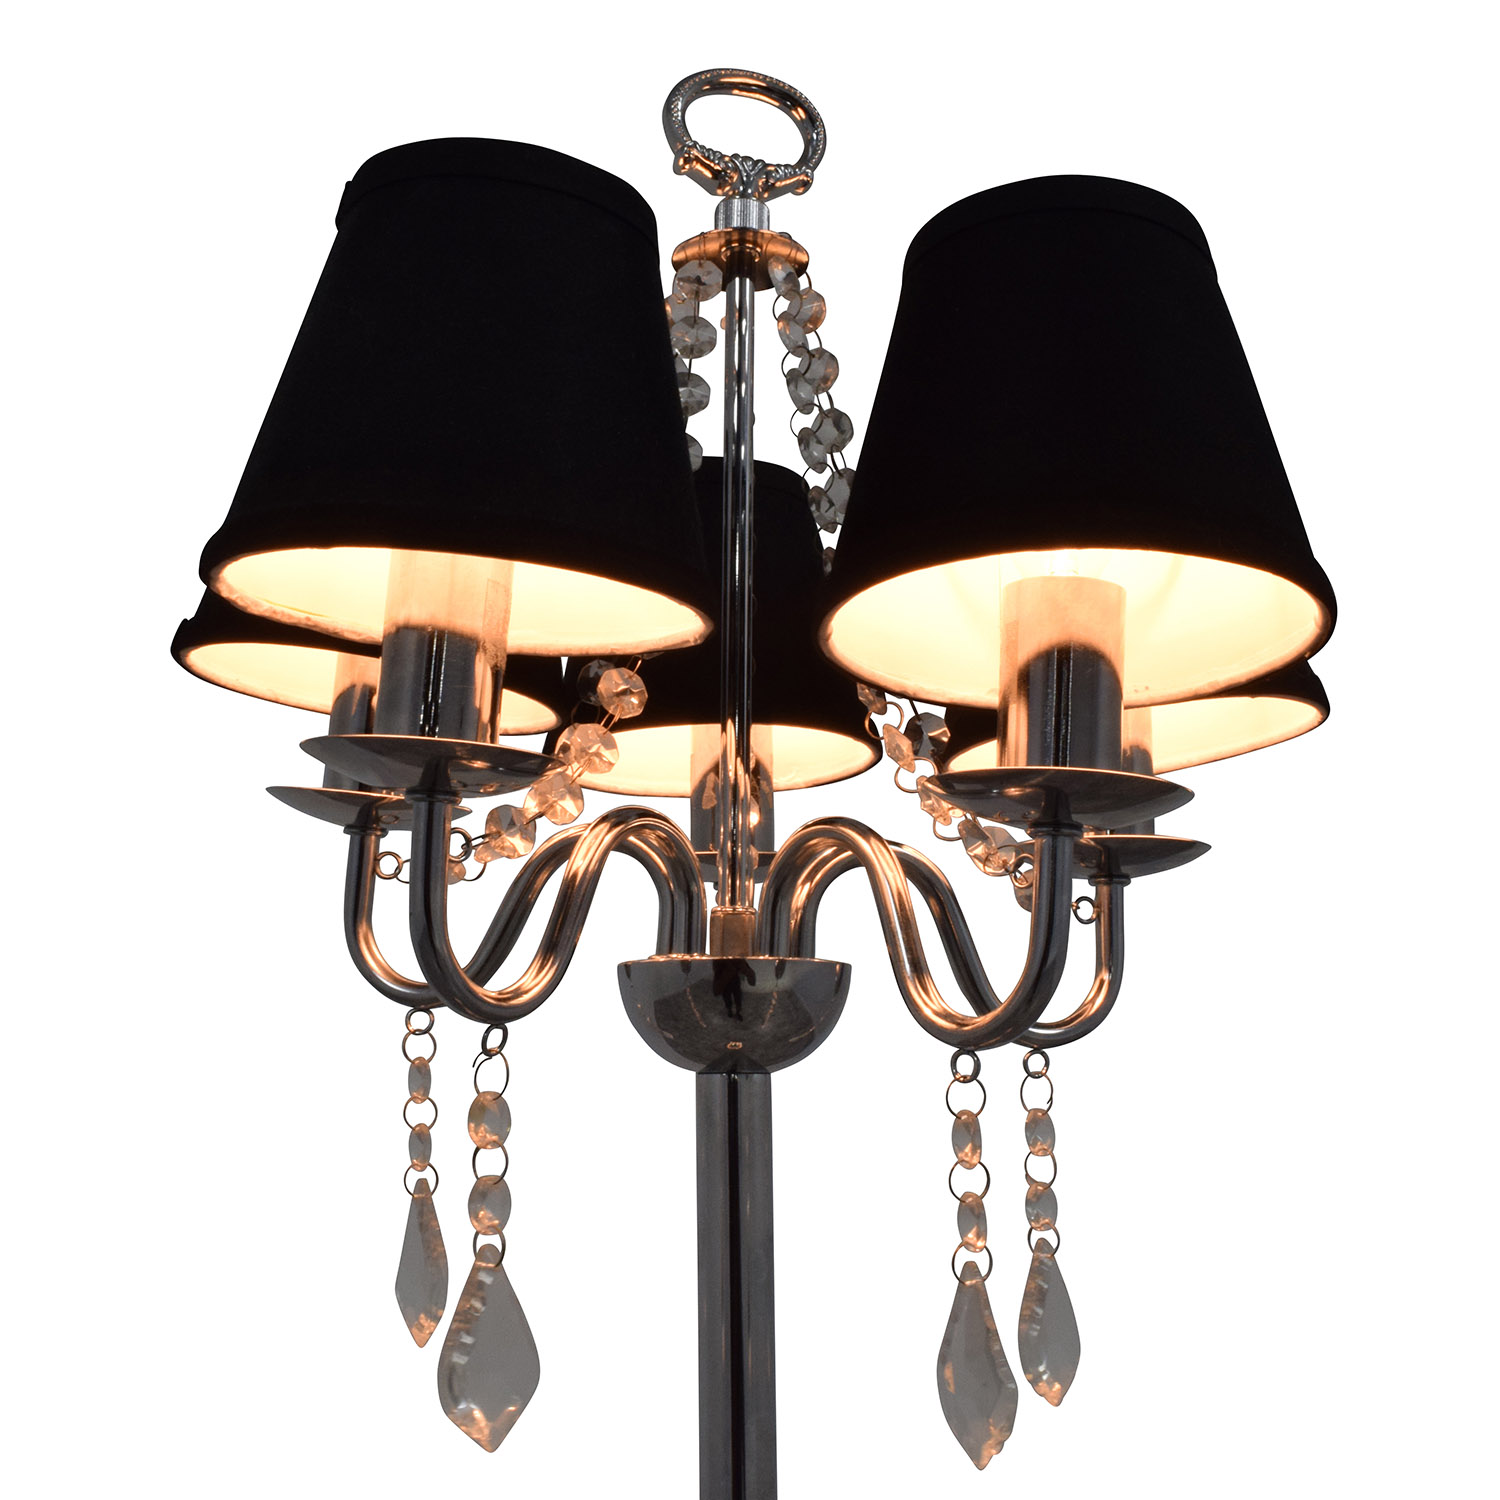 Black Chandelier Floor Lamp With Crystals / Decor